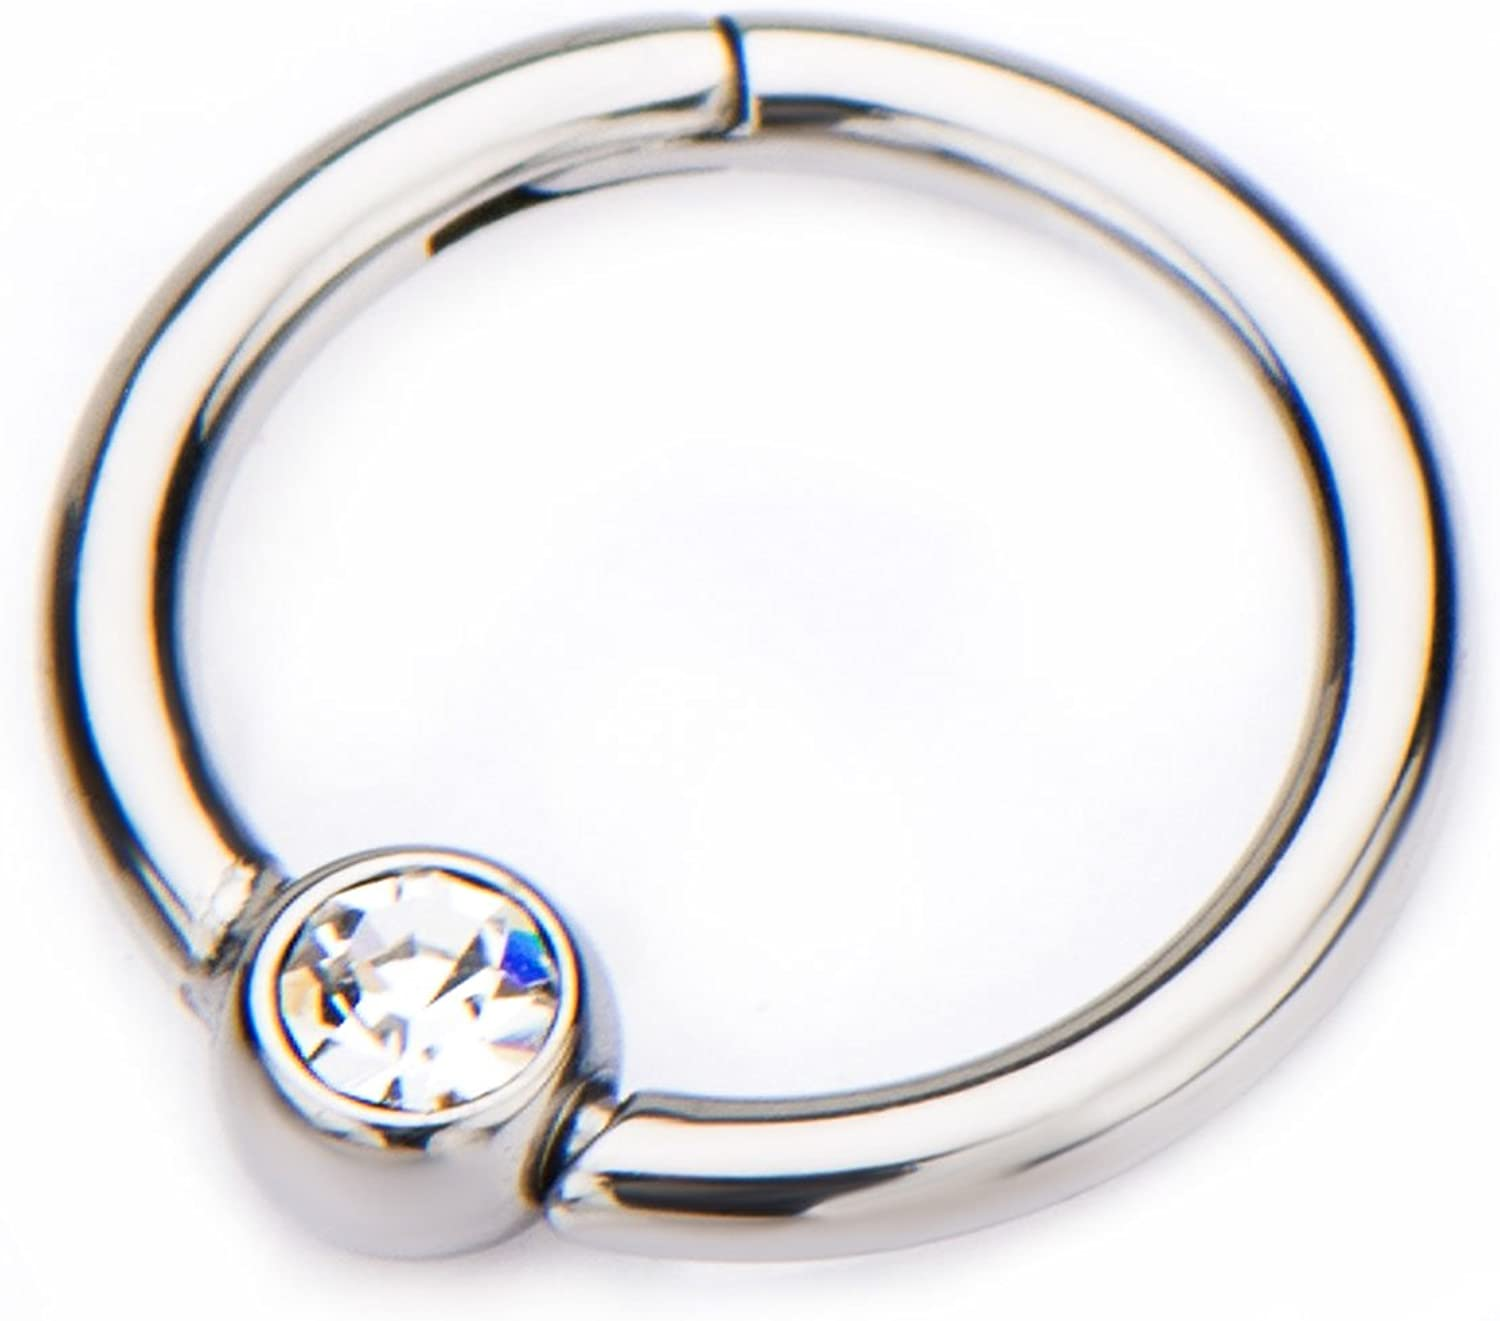 16G CZ Crystal Centered Stainless Steel Hinged Segment Ring for Septum, Nostril, Lip, and Ear Piercings